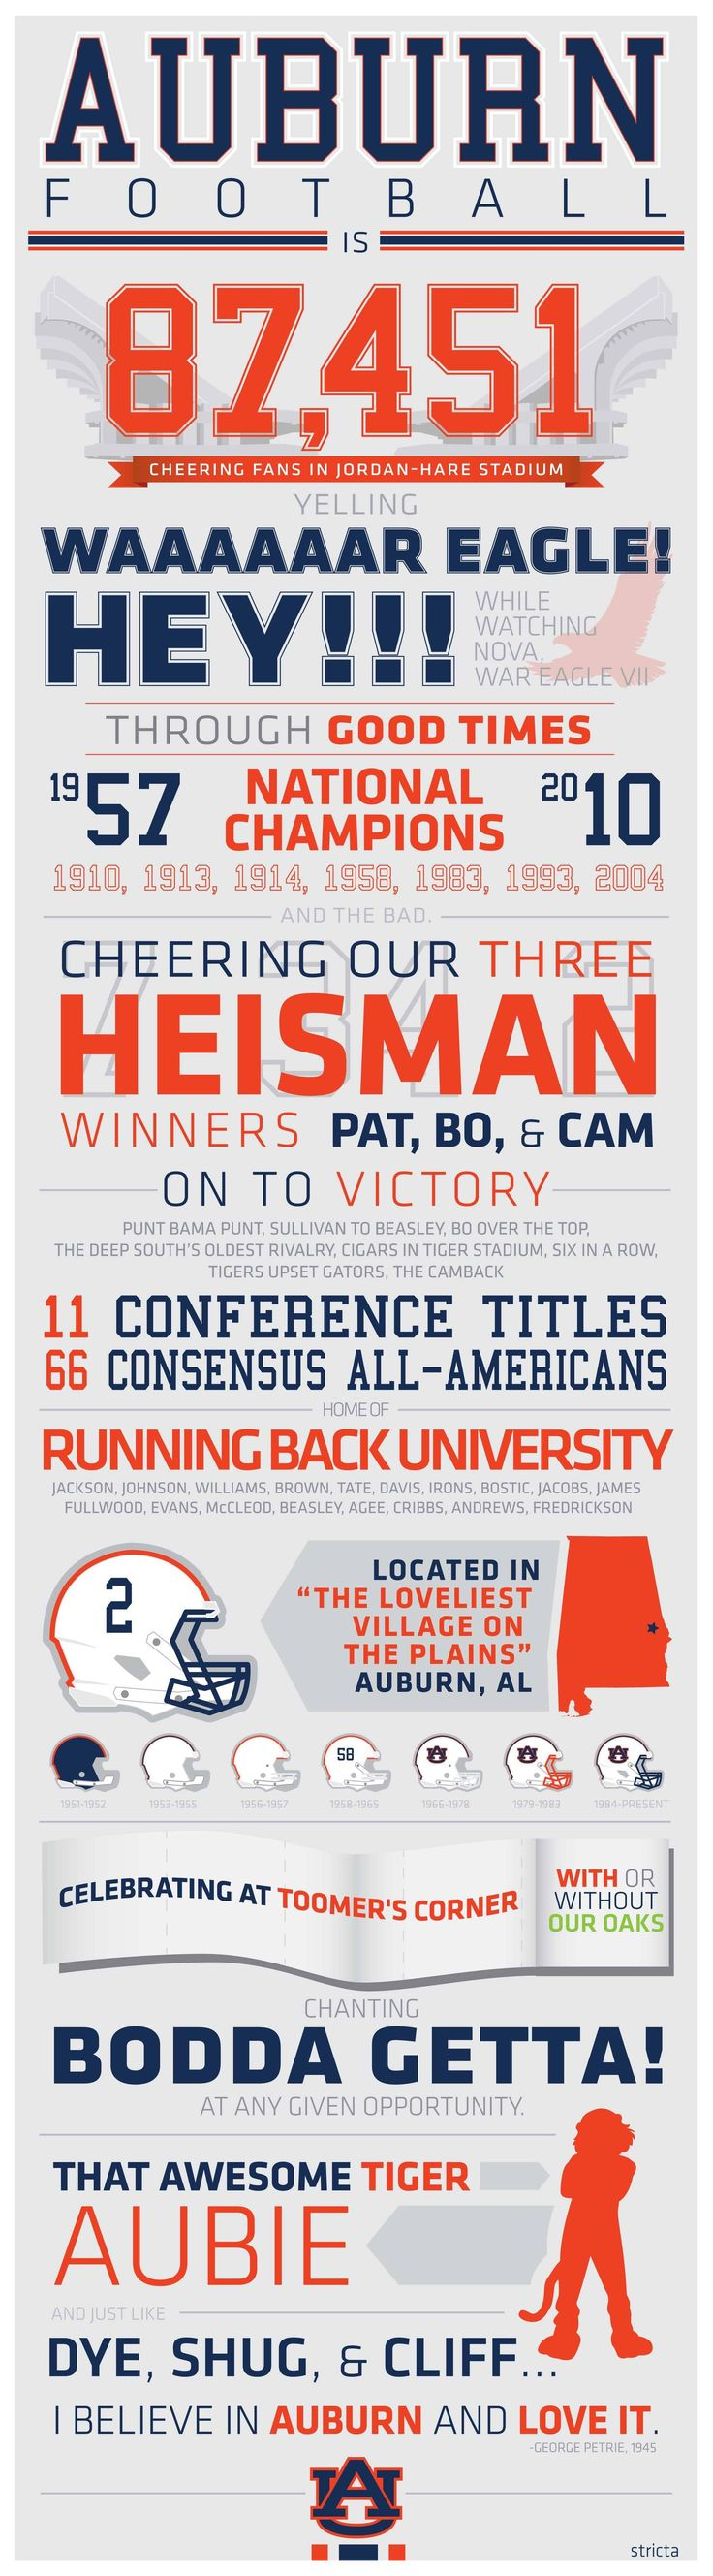 Auburn football infographic - through the good times AND the bad!